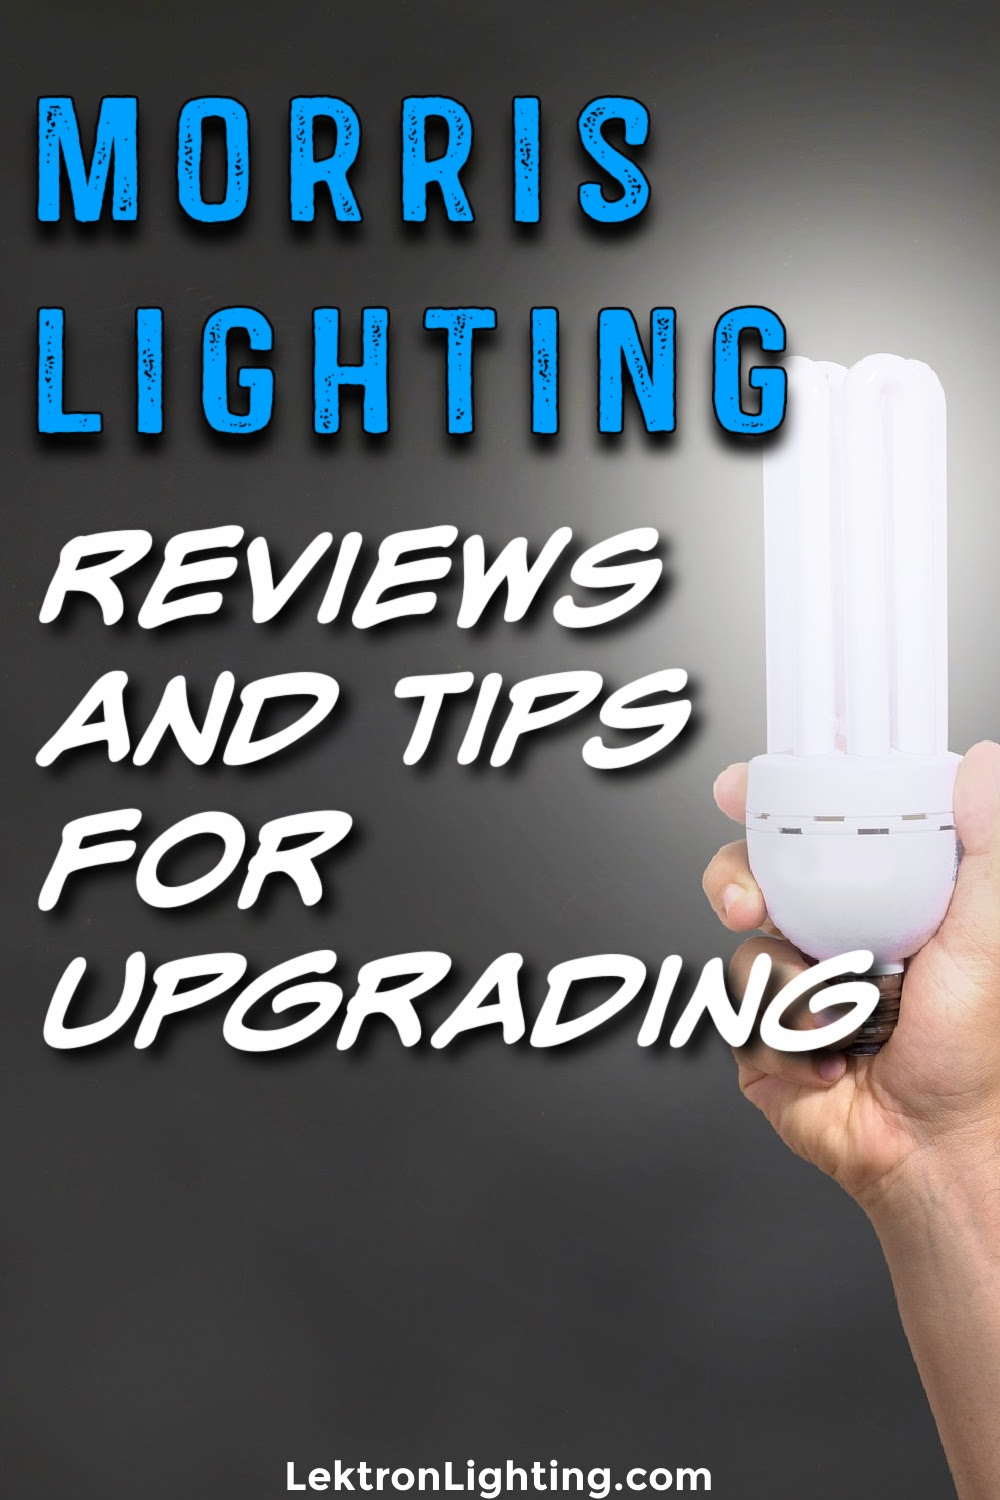 Finding Morris Lighting reviews is a good way to decide how to utilize lighting in your business before making a final purchase.